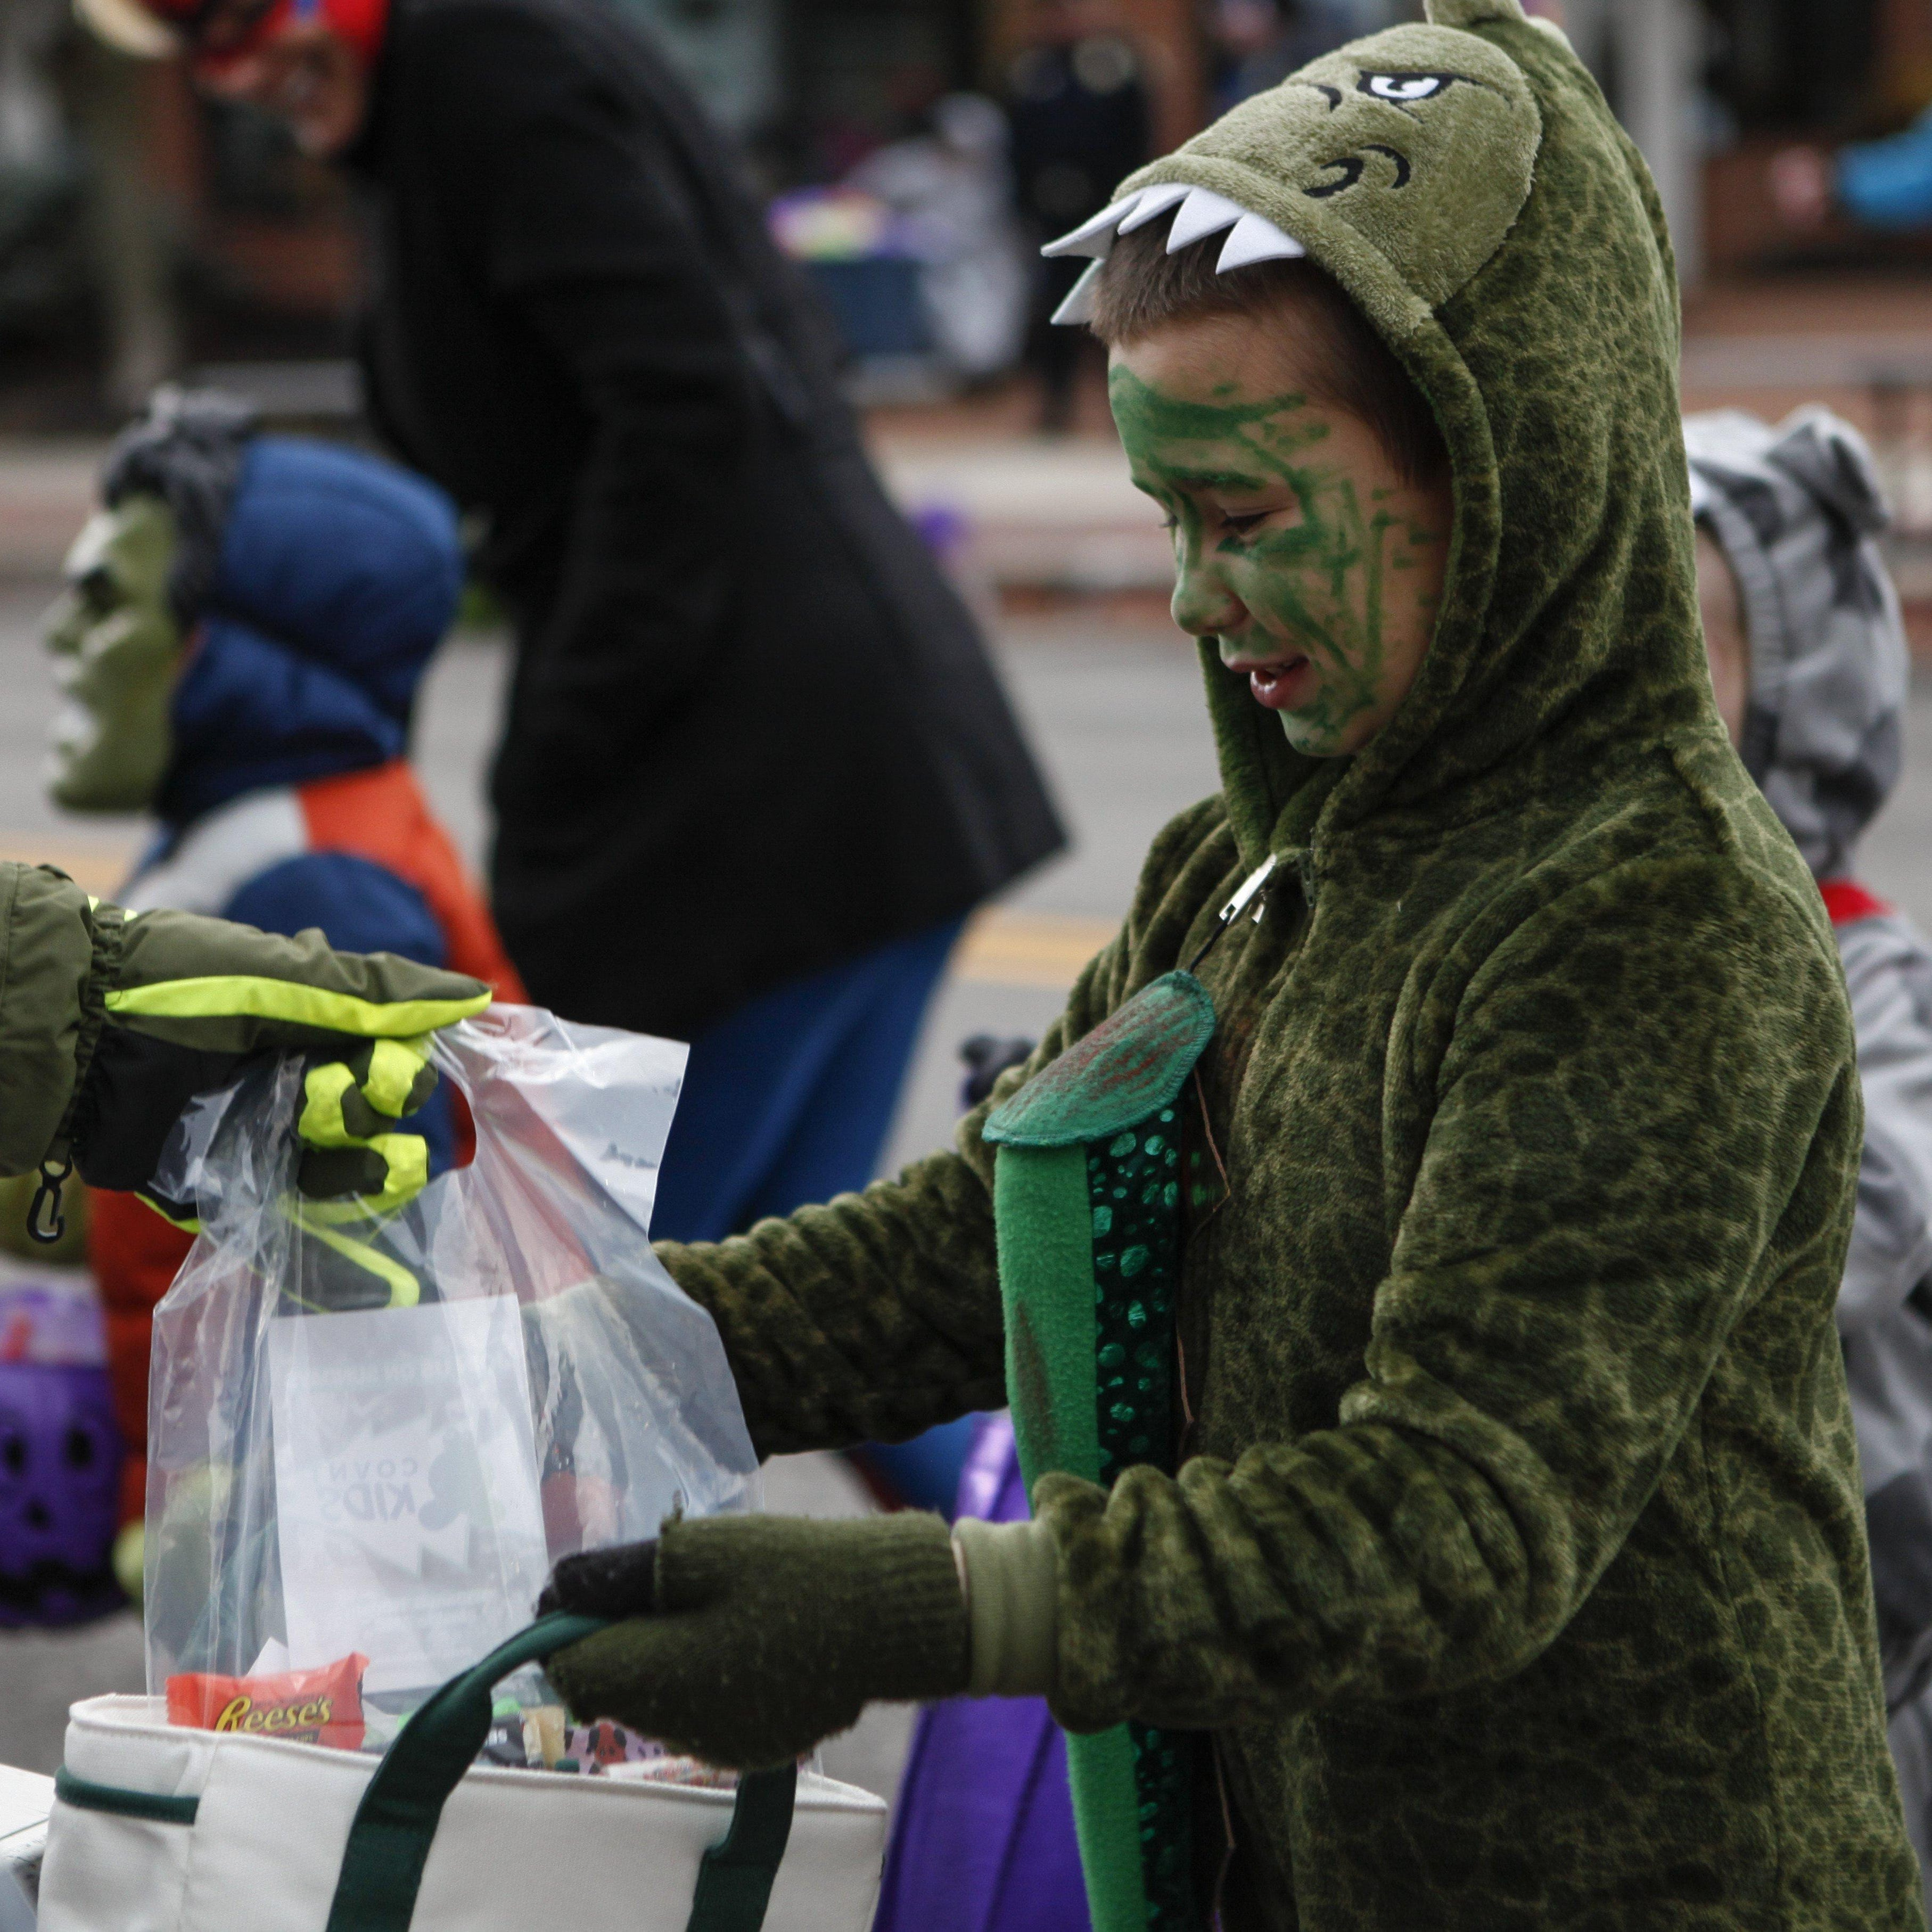 Halloween 2020 Activities In Ohio COVID 19 in Ohio: State issues recommendations for trick or treating